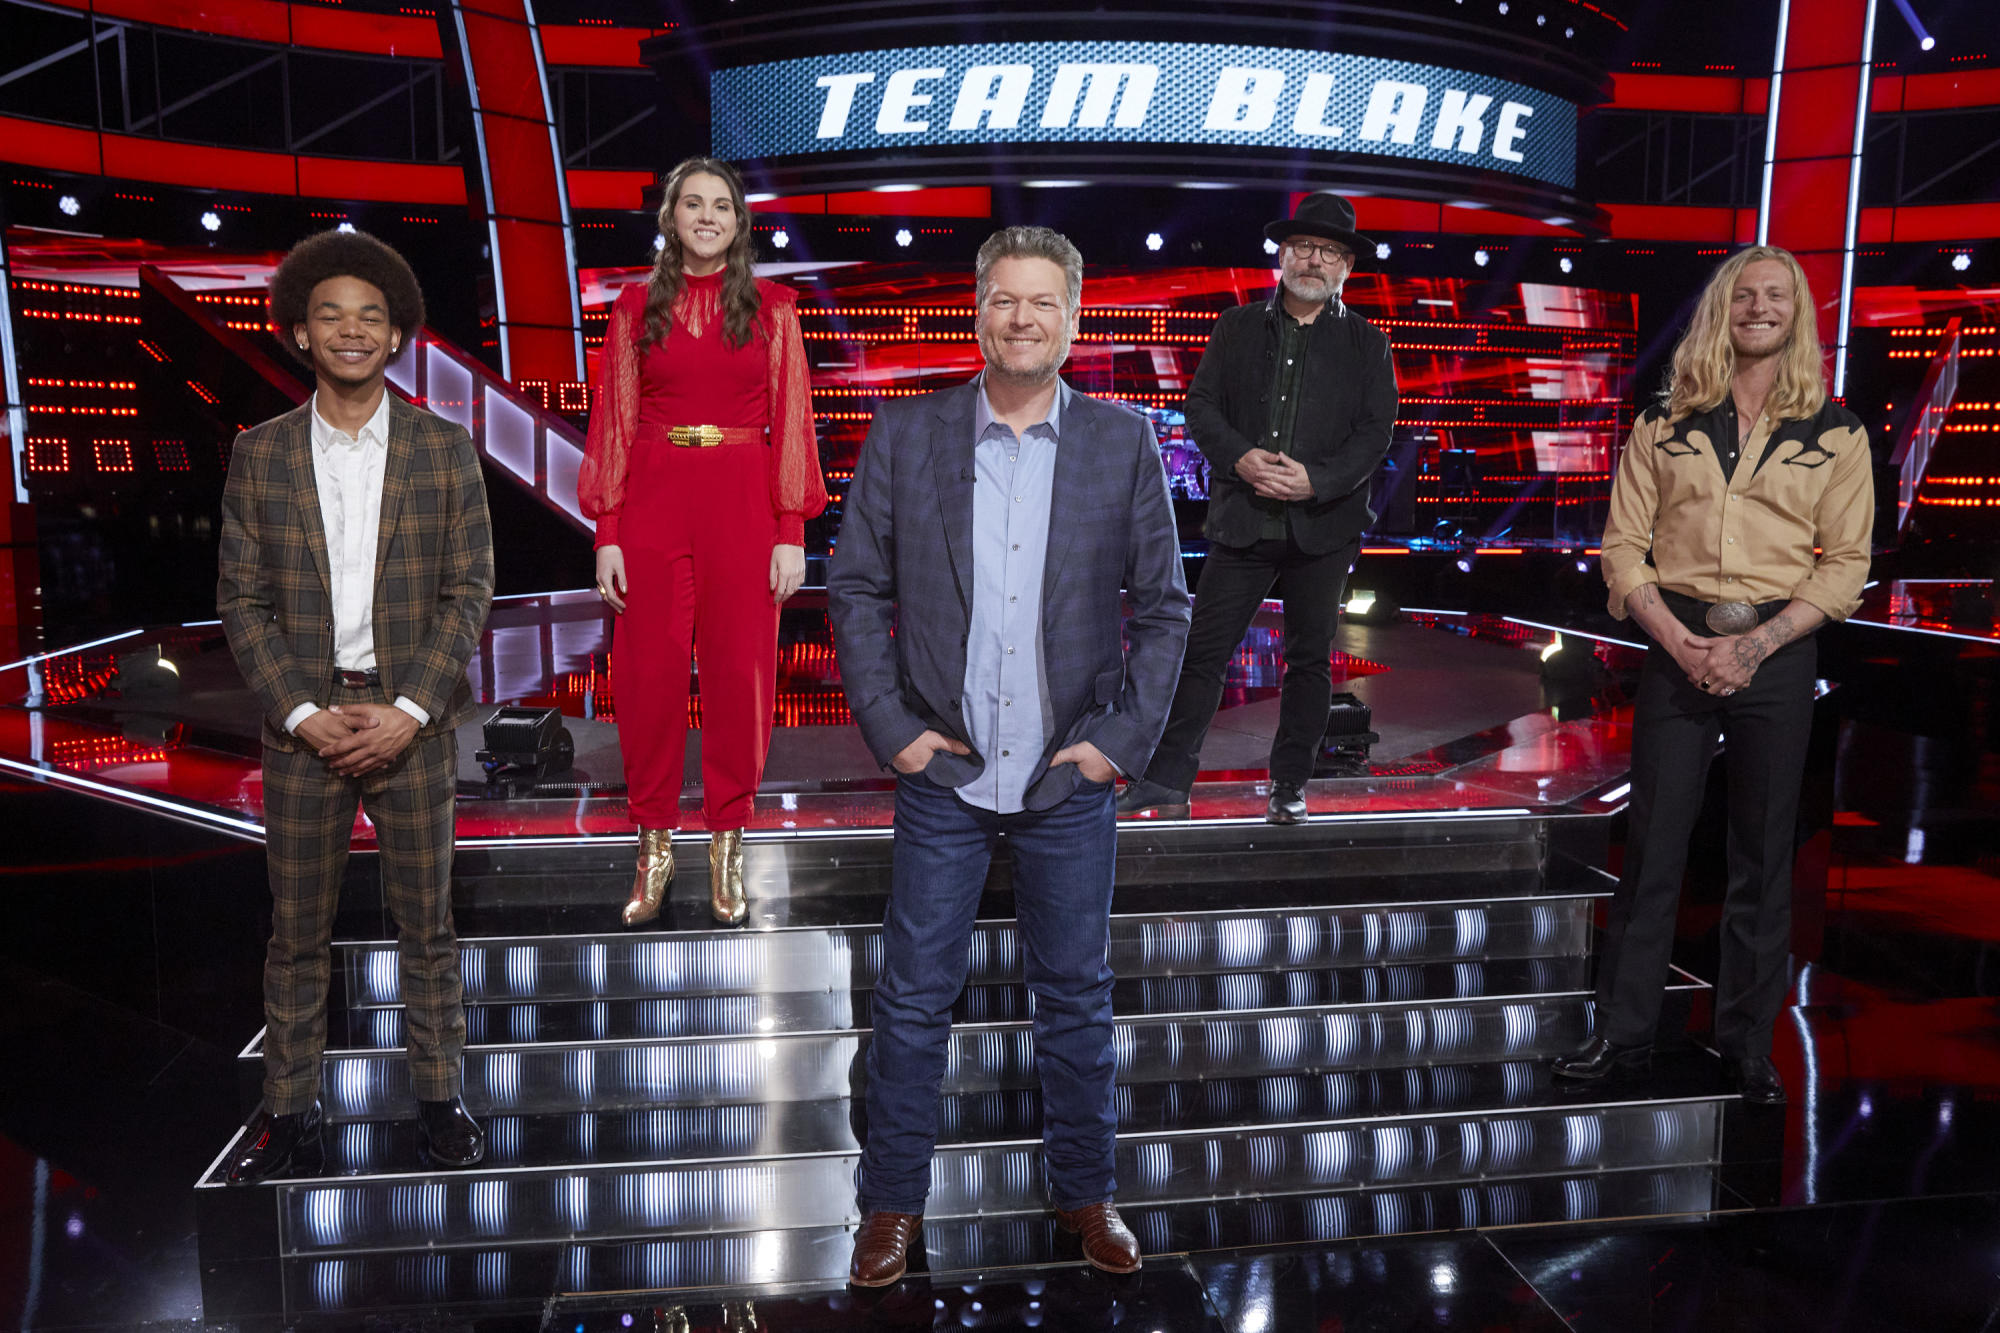 After 10 years and 20 seasons, Blake Shelton thinks 'The Voice' has finally found its 'first superstar' - Yahoo Entertainment